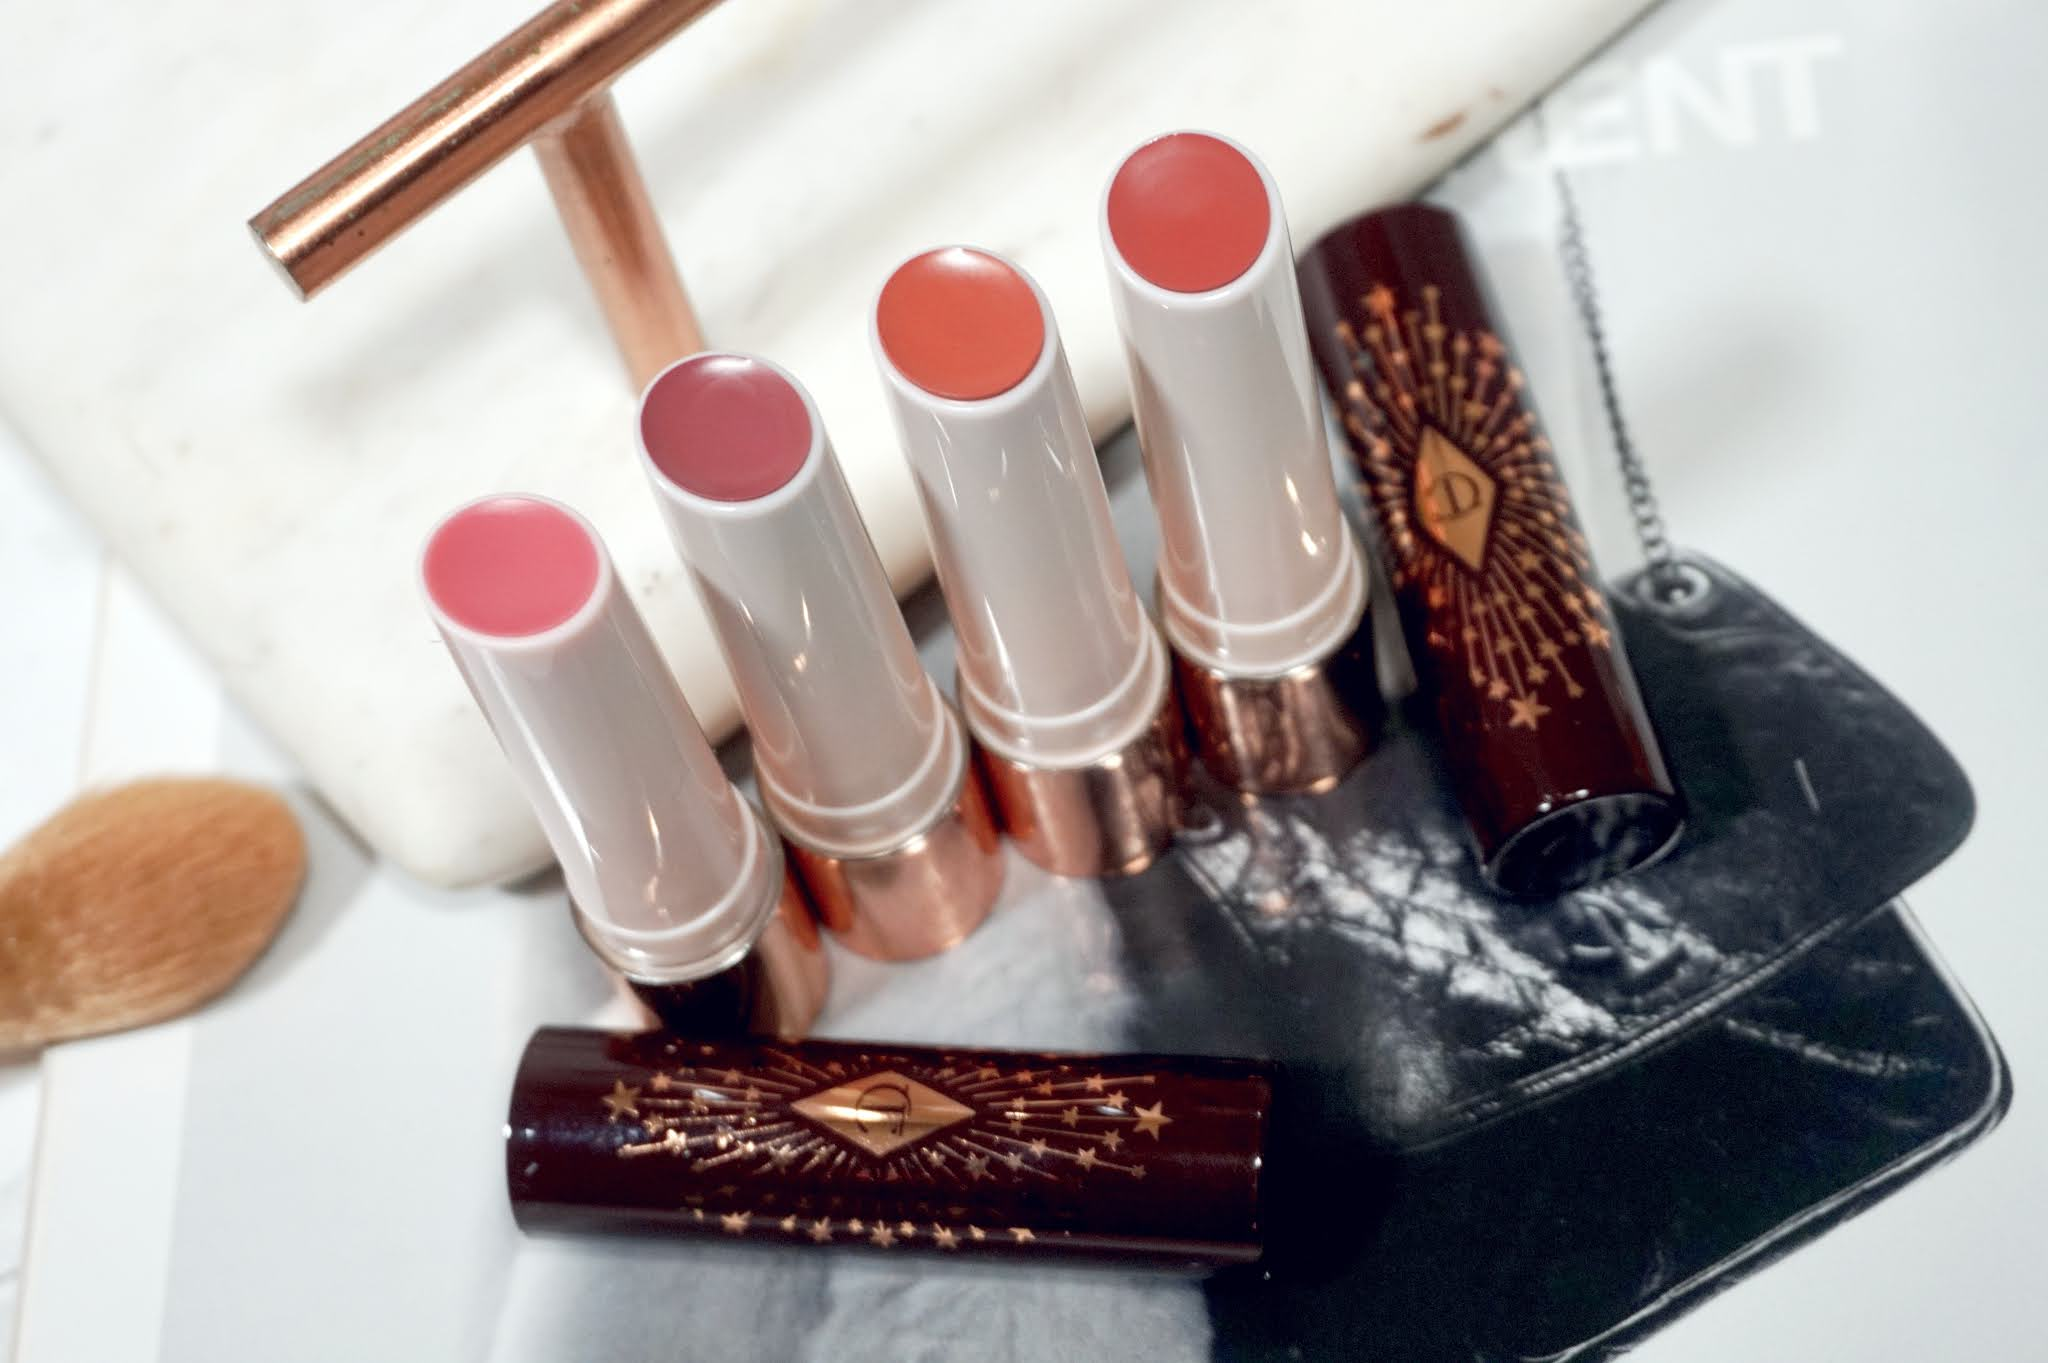 Charlotte Tilbury Hyaluronic HappiKiss Hydrating Lipstick Balms Review and Swatches